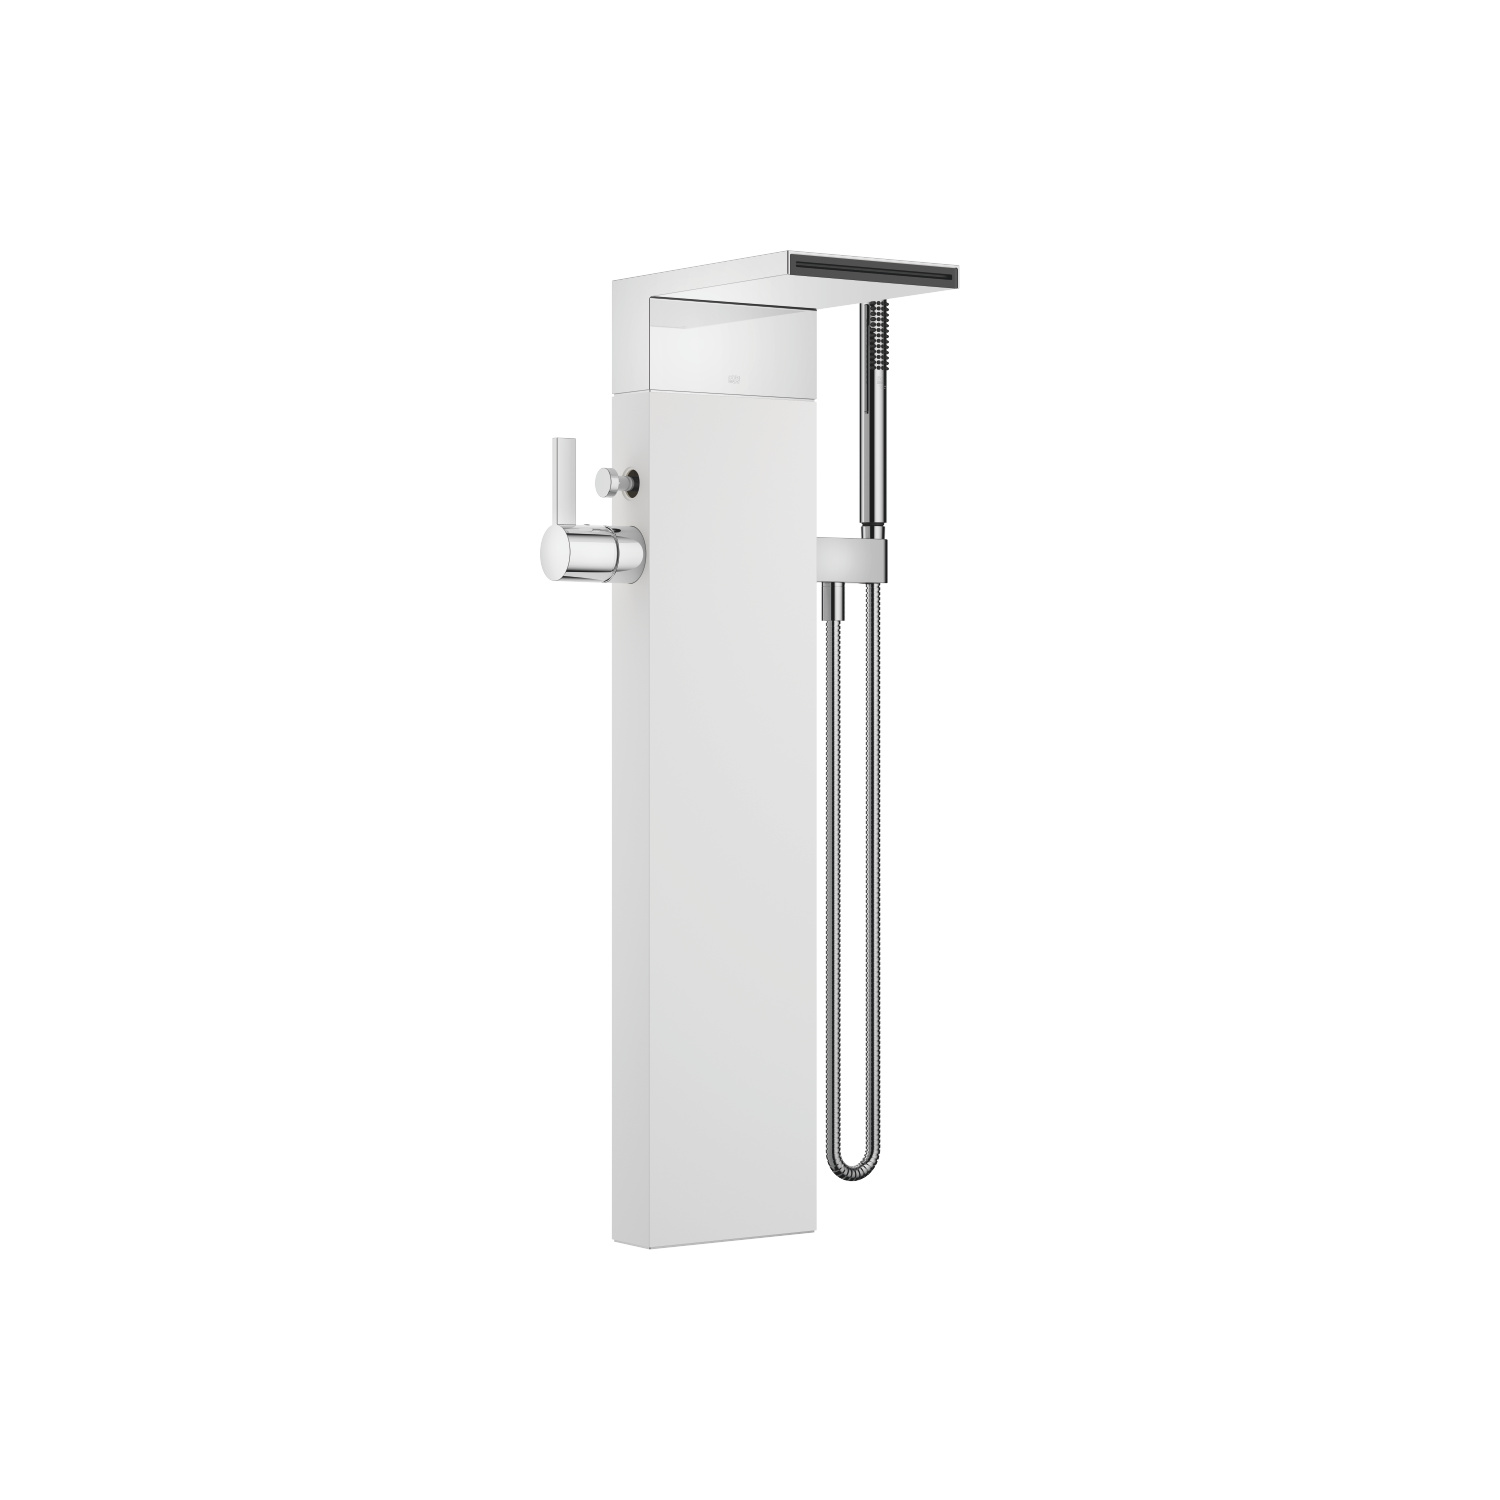 Single-lever bath mixer with cascade spout for free-standing assembly with hand shower set - polished chrome